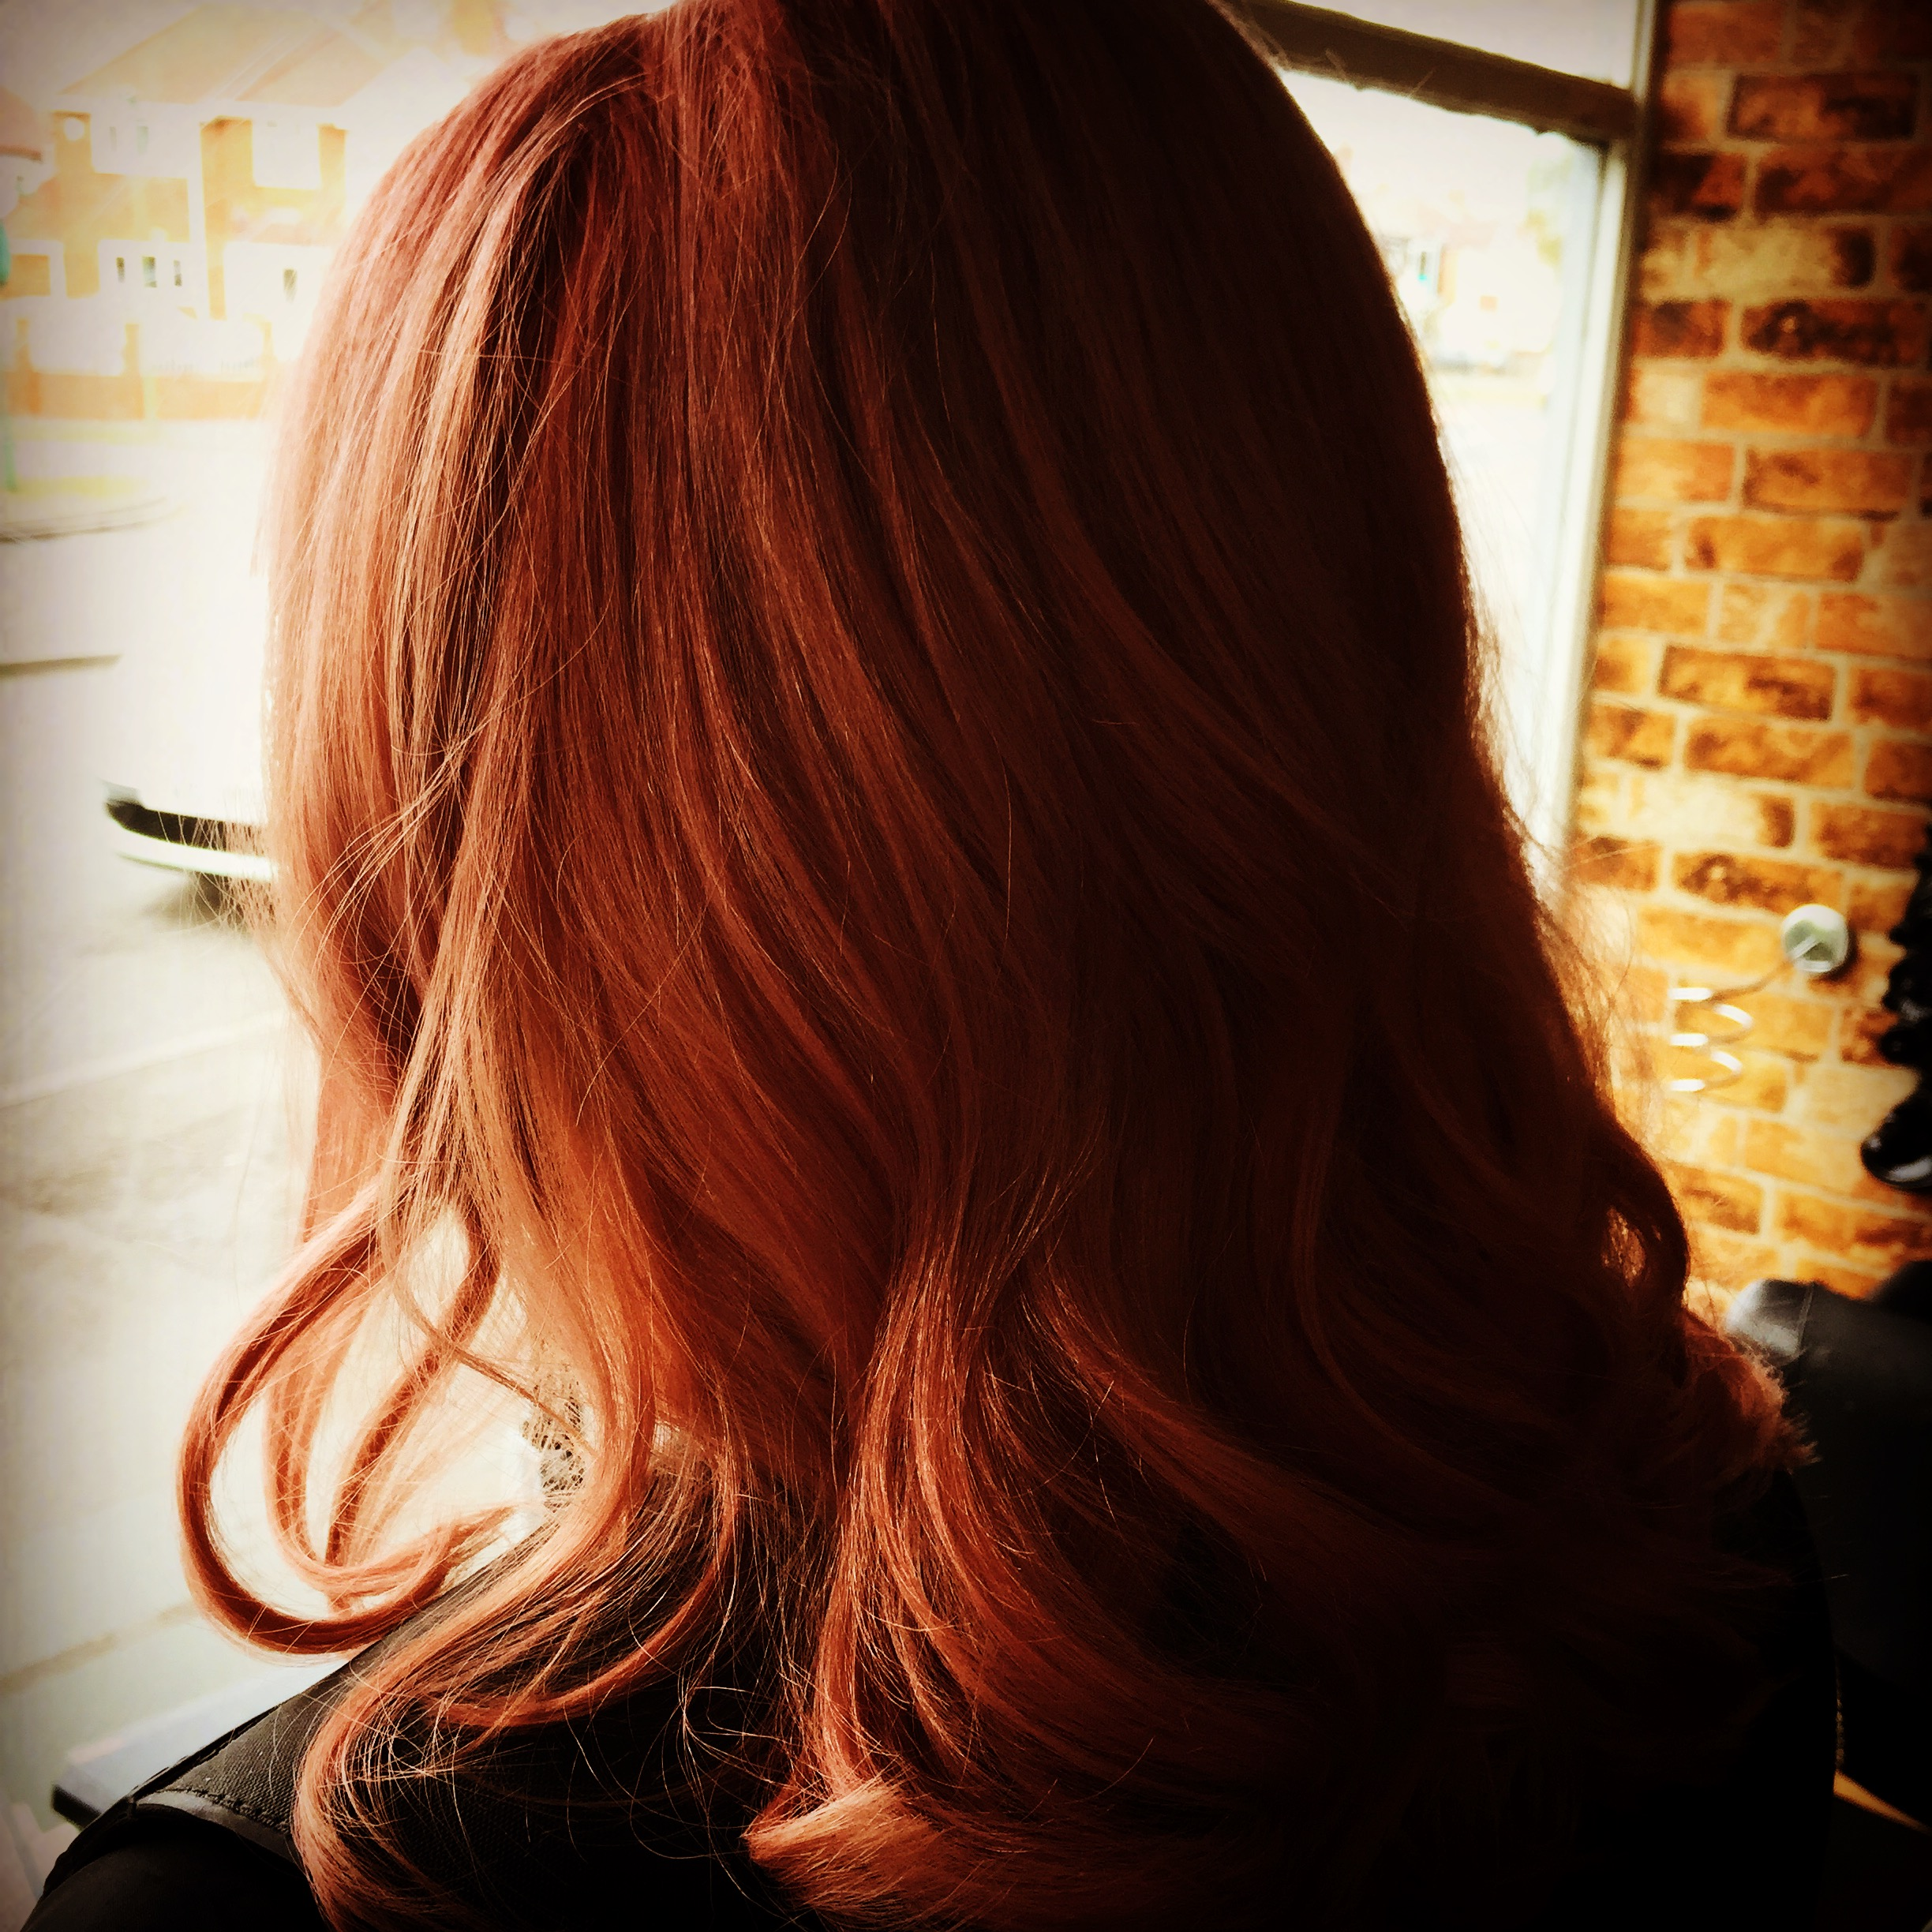 copper hair colour done by hair experts in professional hair salon